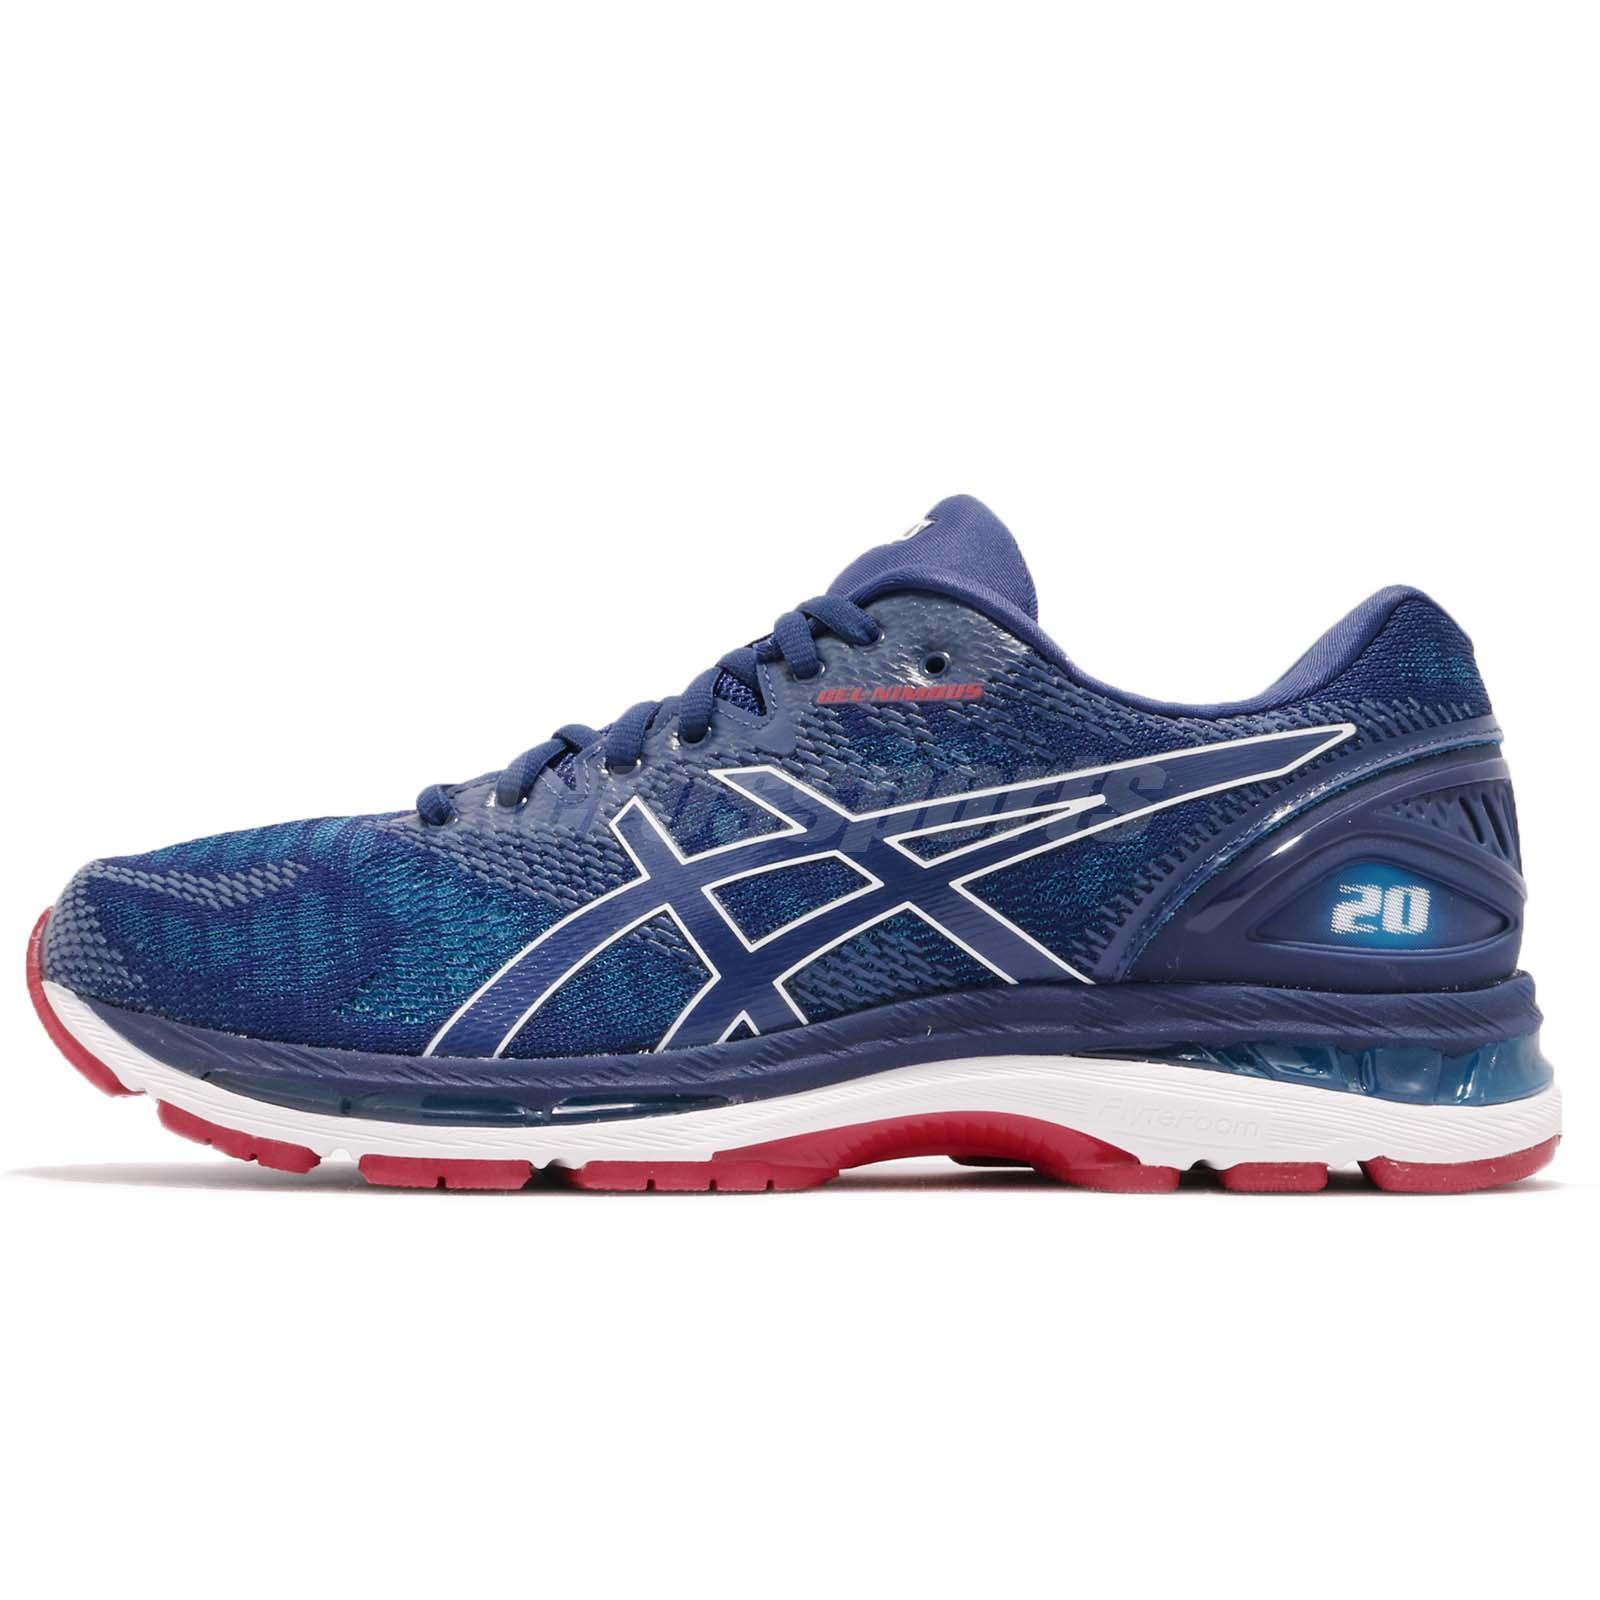 Asics Gel-Nimbus 20 4E Extra Wide Race Blue Print Men Running Shoes  T802N-400 f189d814ab40d